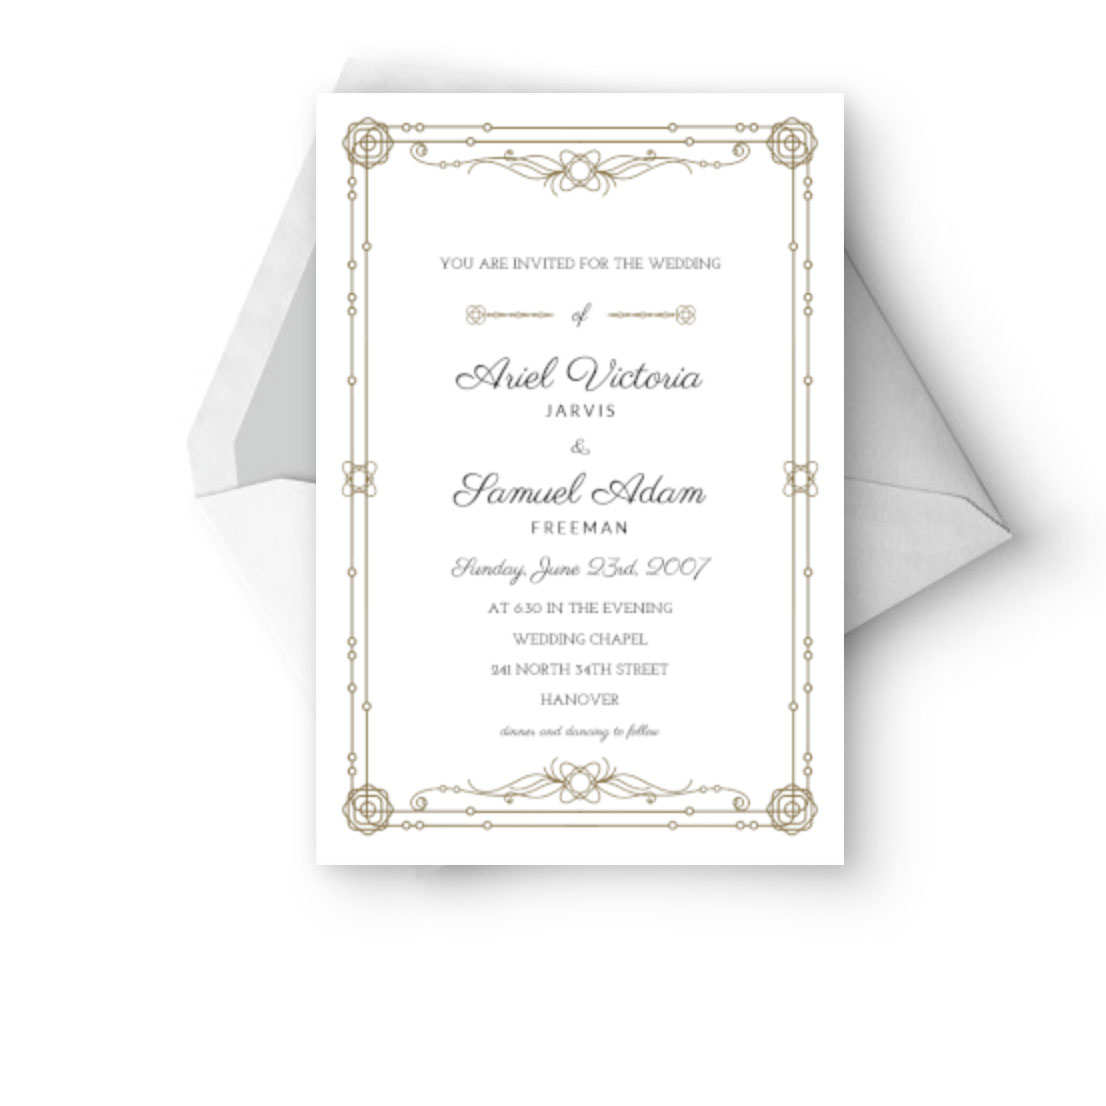 INVITATION CARDS Archives - Luxury Wedding Invitations, Handmade ...